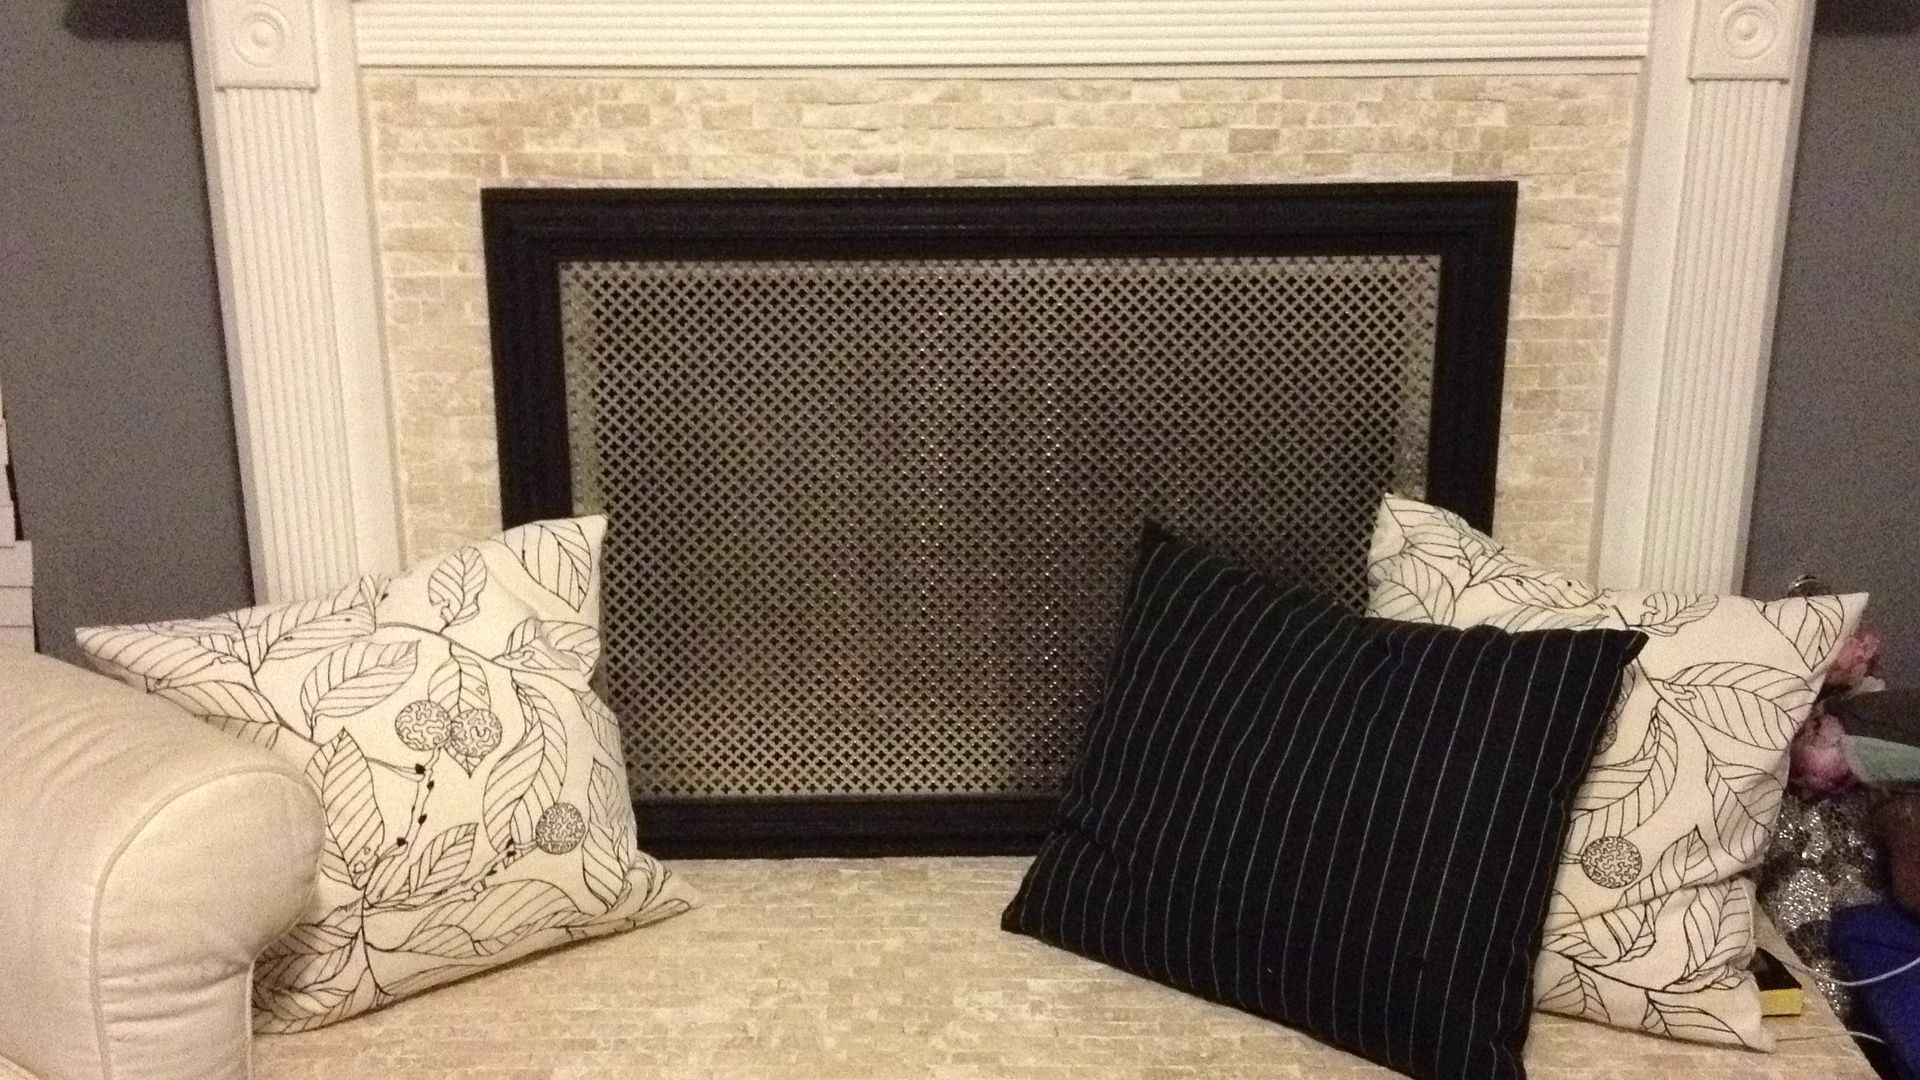 DIY Decorative Fireplace Screen   Drop A Perforated Aluminum Sheet (I Got  Mine From Home Depot) Into A Picture Frame. Hot Glue Where The Metal Meets  The ...